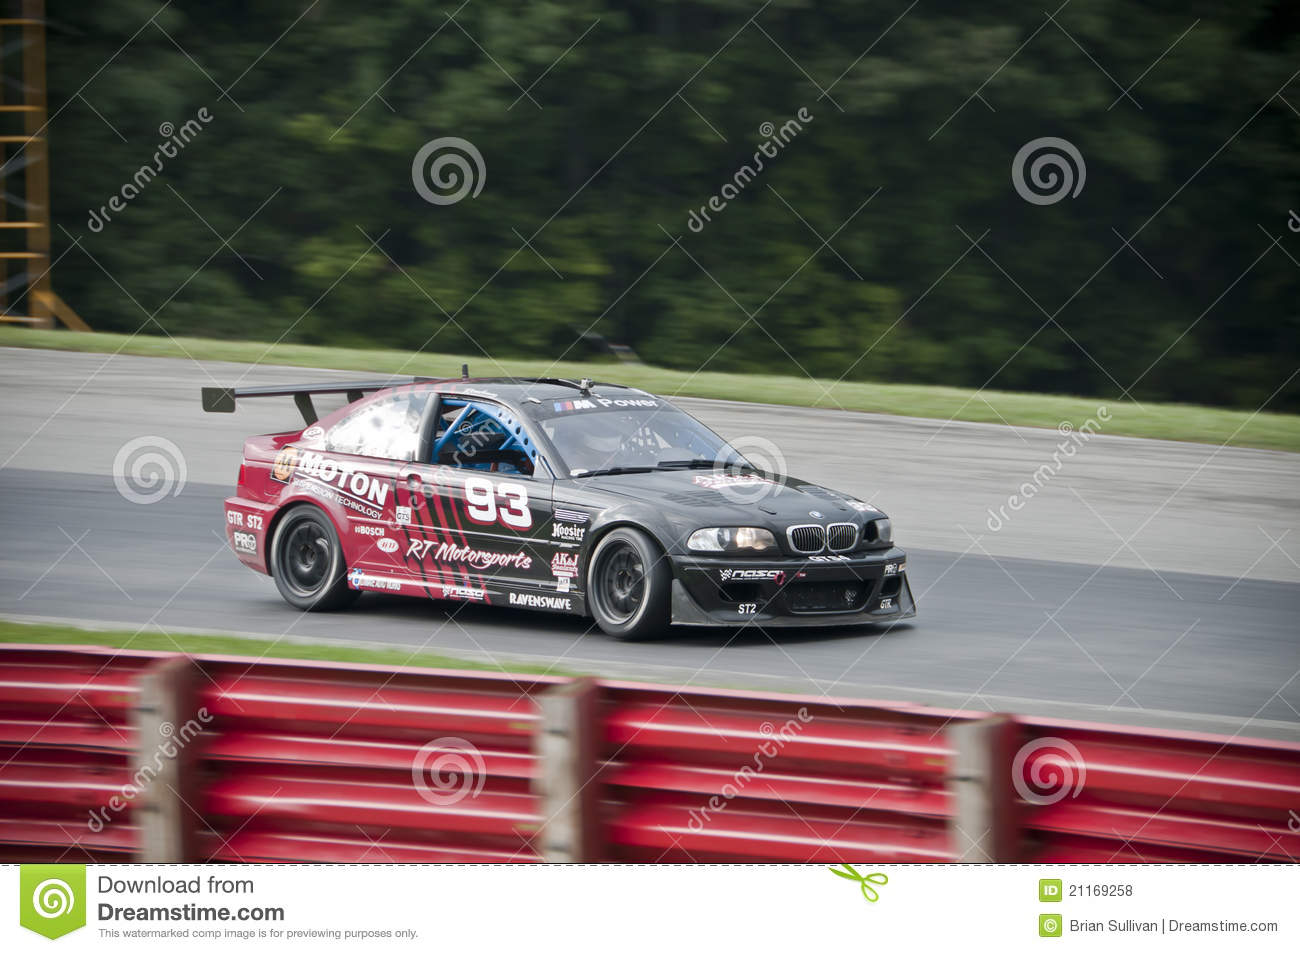 Bmw M3 Race Car Editorial Stock Photo Image Of Concept 21169258